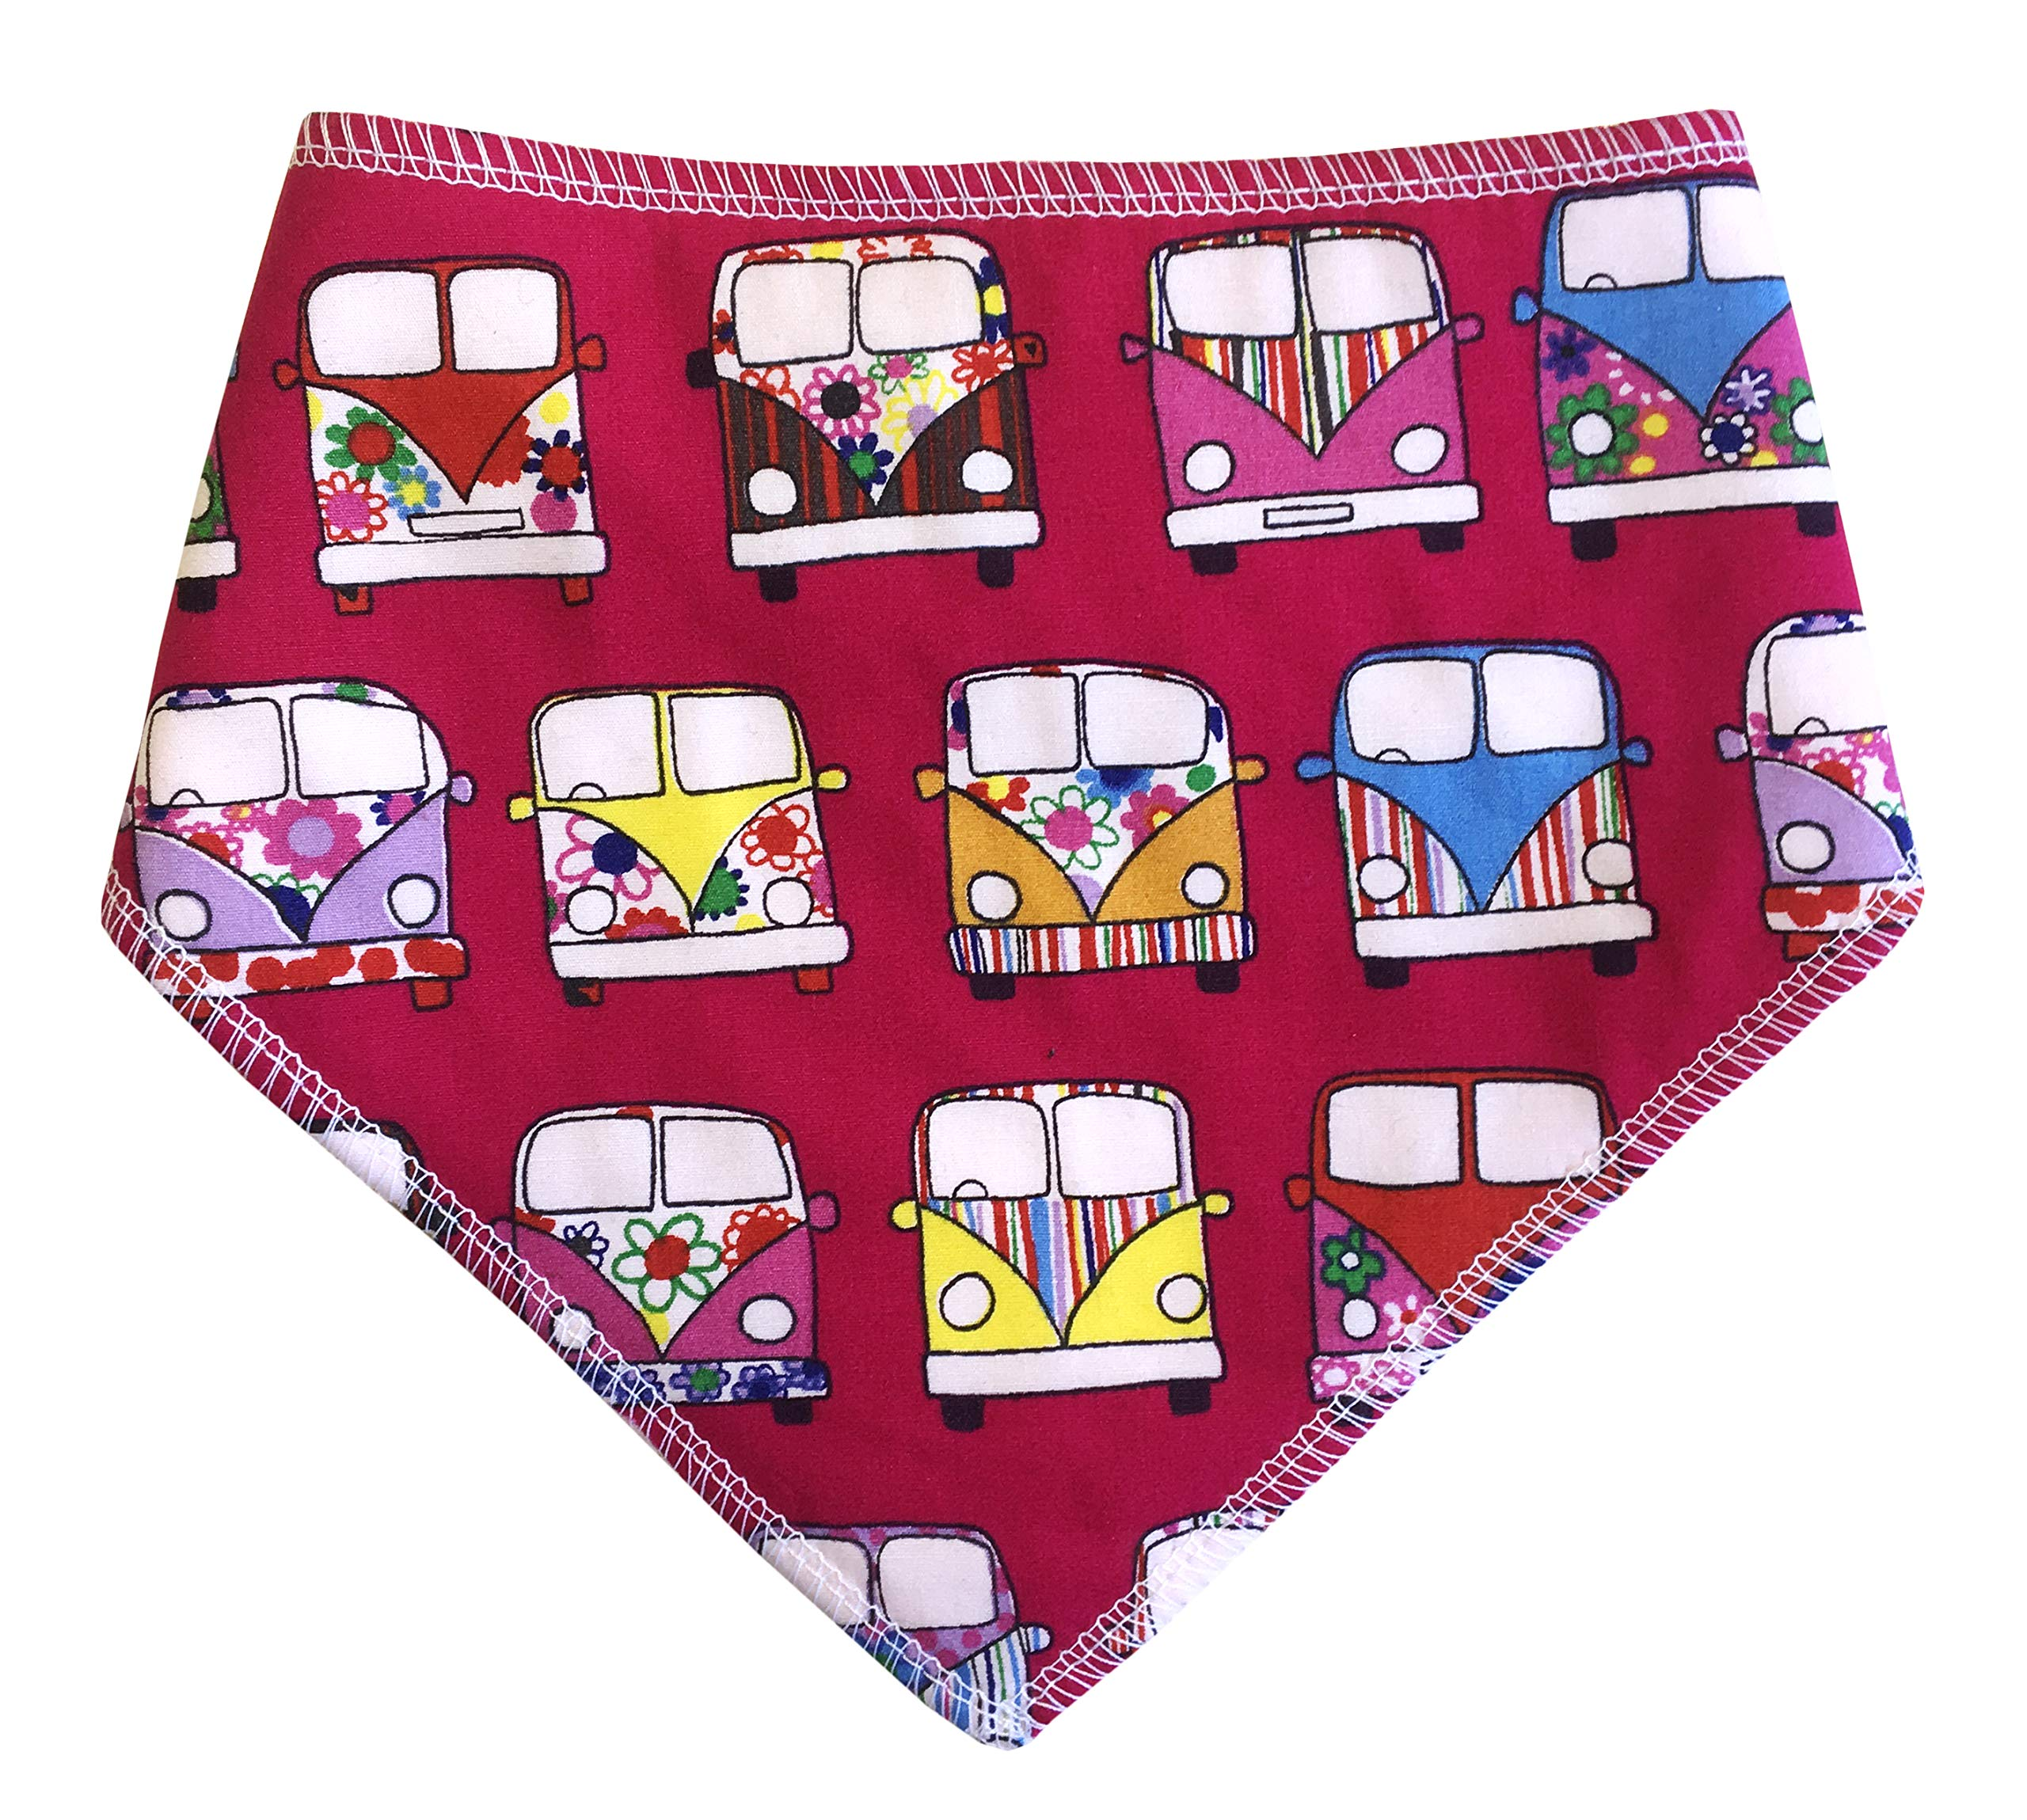 Spoilt Rotten Pets (S4) Cerise Pink VW Camper Fabric Dog Bandana Adjustable Neck to Fit Large to Extra/Large Dogs – Neck Size 23″ – 28″ Generally Fits Chow Chow, German Shepherd, St Bernard, Dogue de Bordeaux and Similar Sized Dogs.